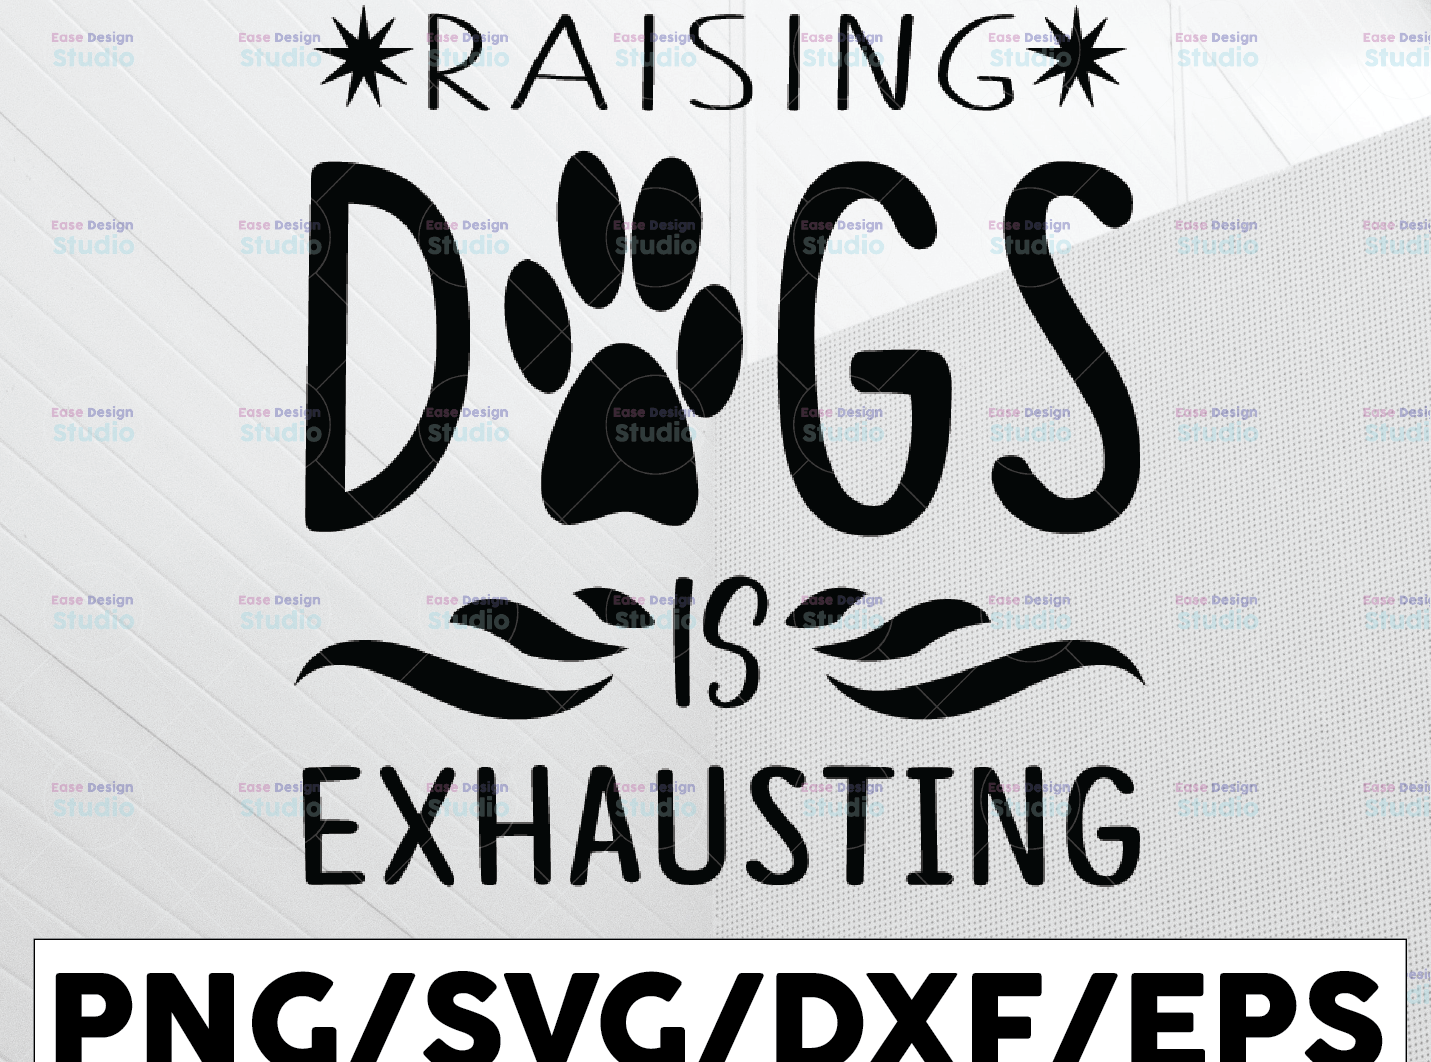 Raising Dogs Is Exhausting svg dxf eps png Files for Cutting Machines Cameo Cricut - WTMETSY13012021 01 196 -